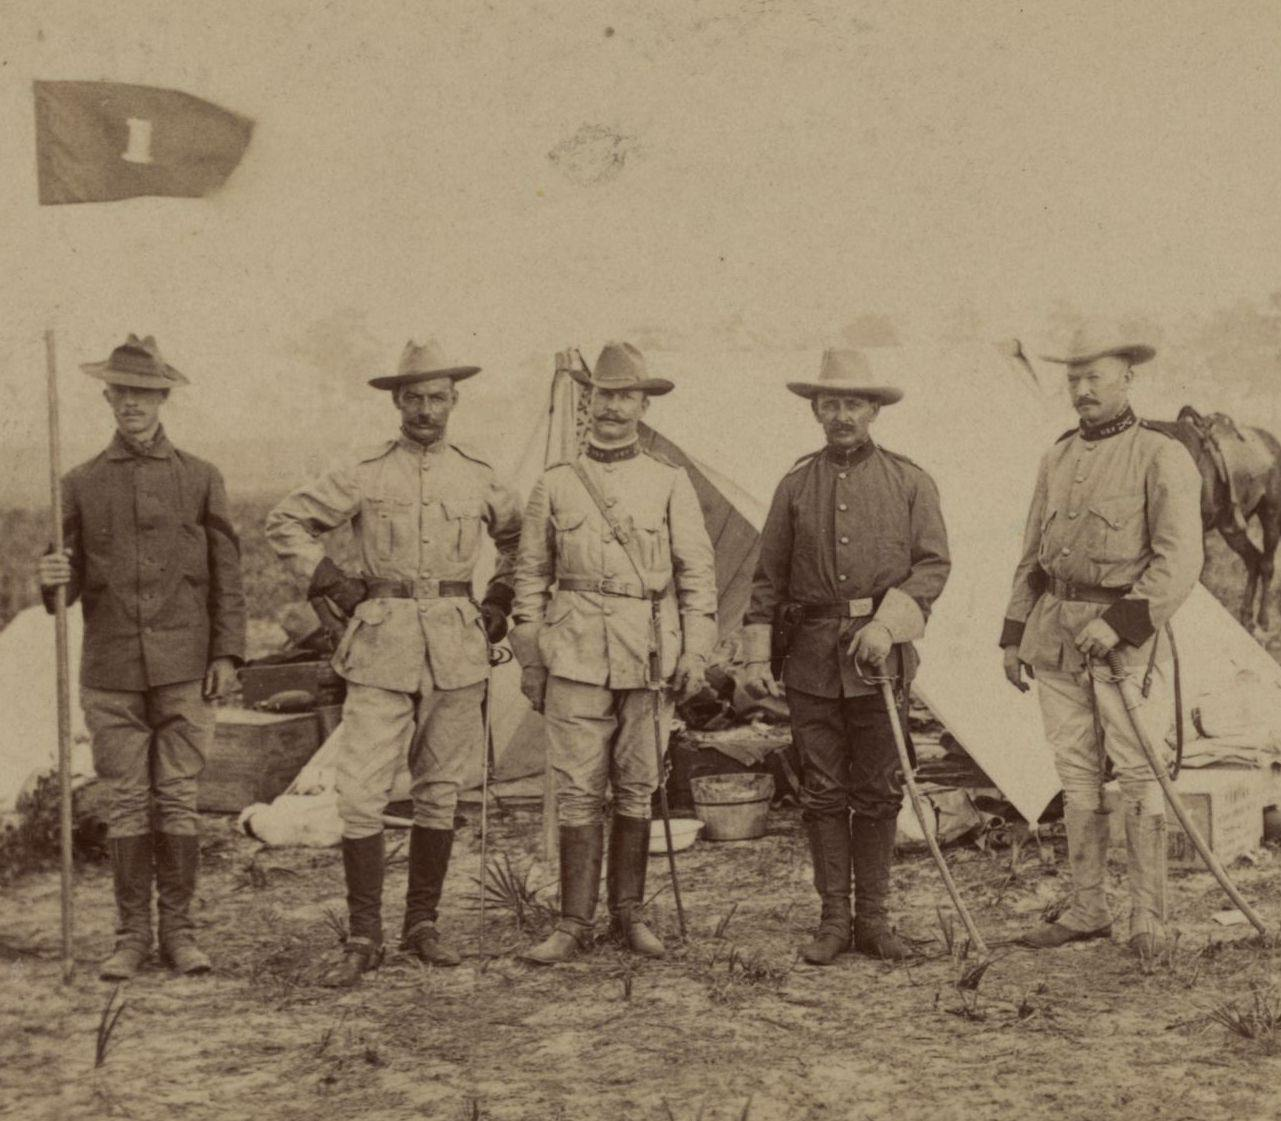 Spanish-American War uniforms